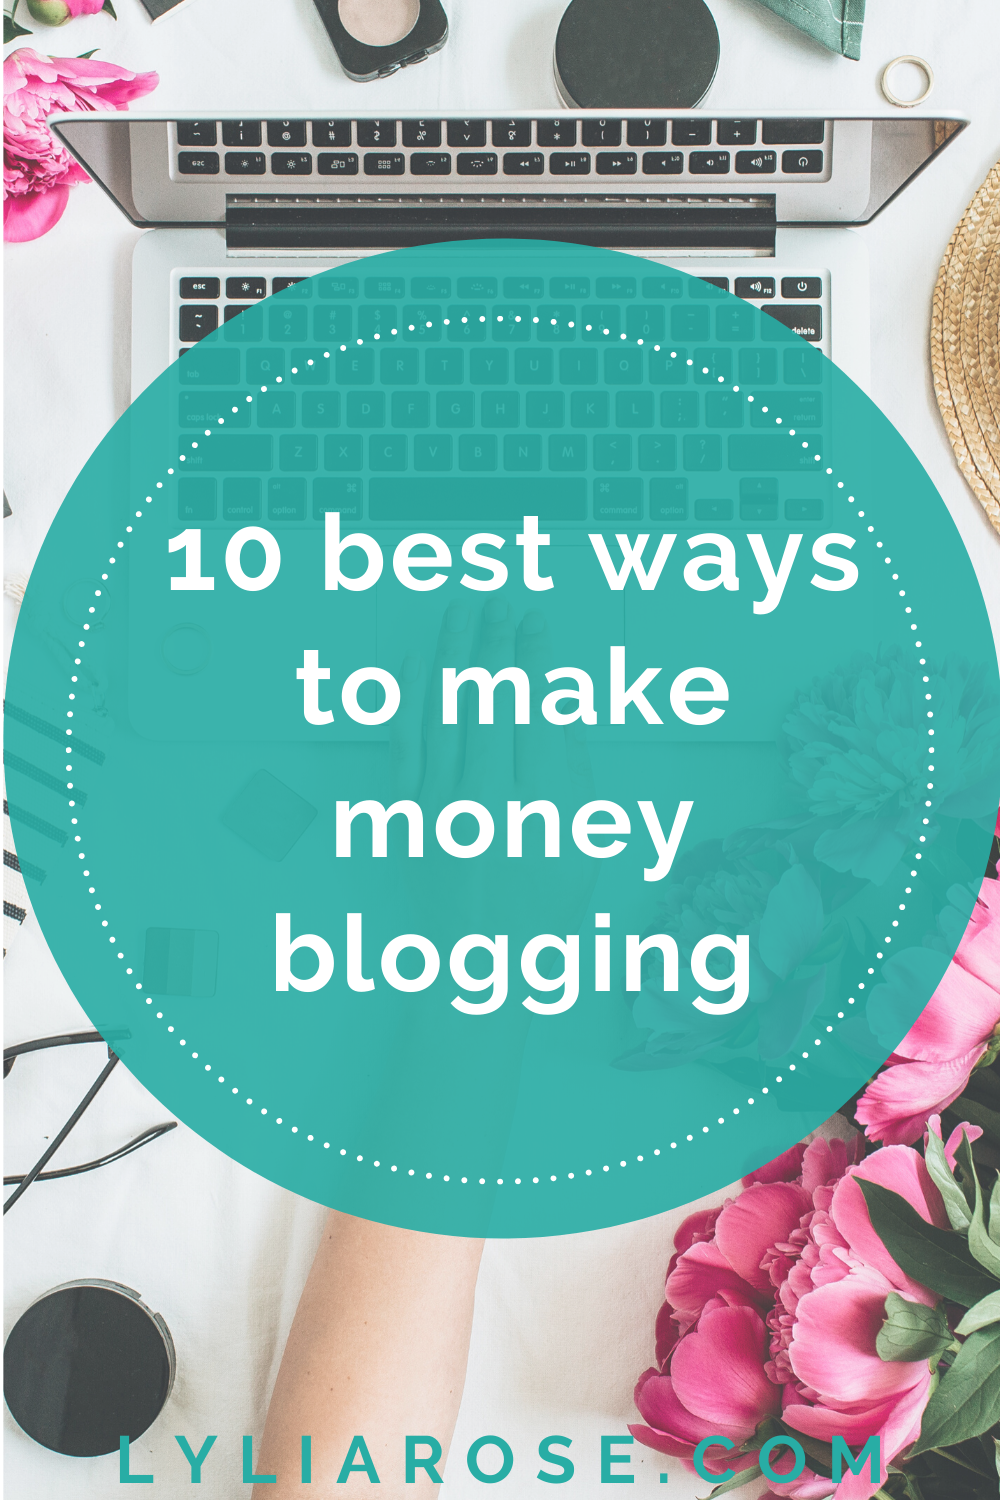 10 best ways to make money blogging